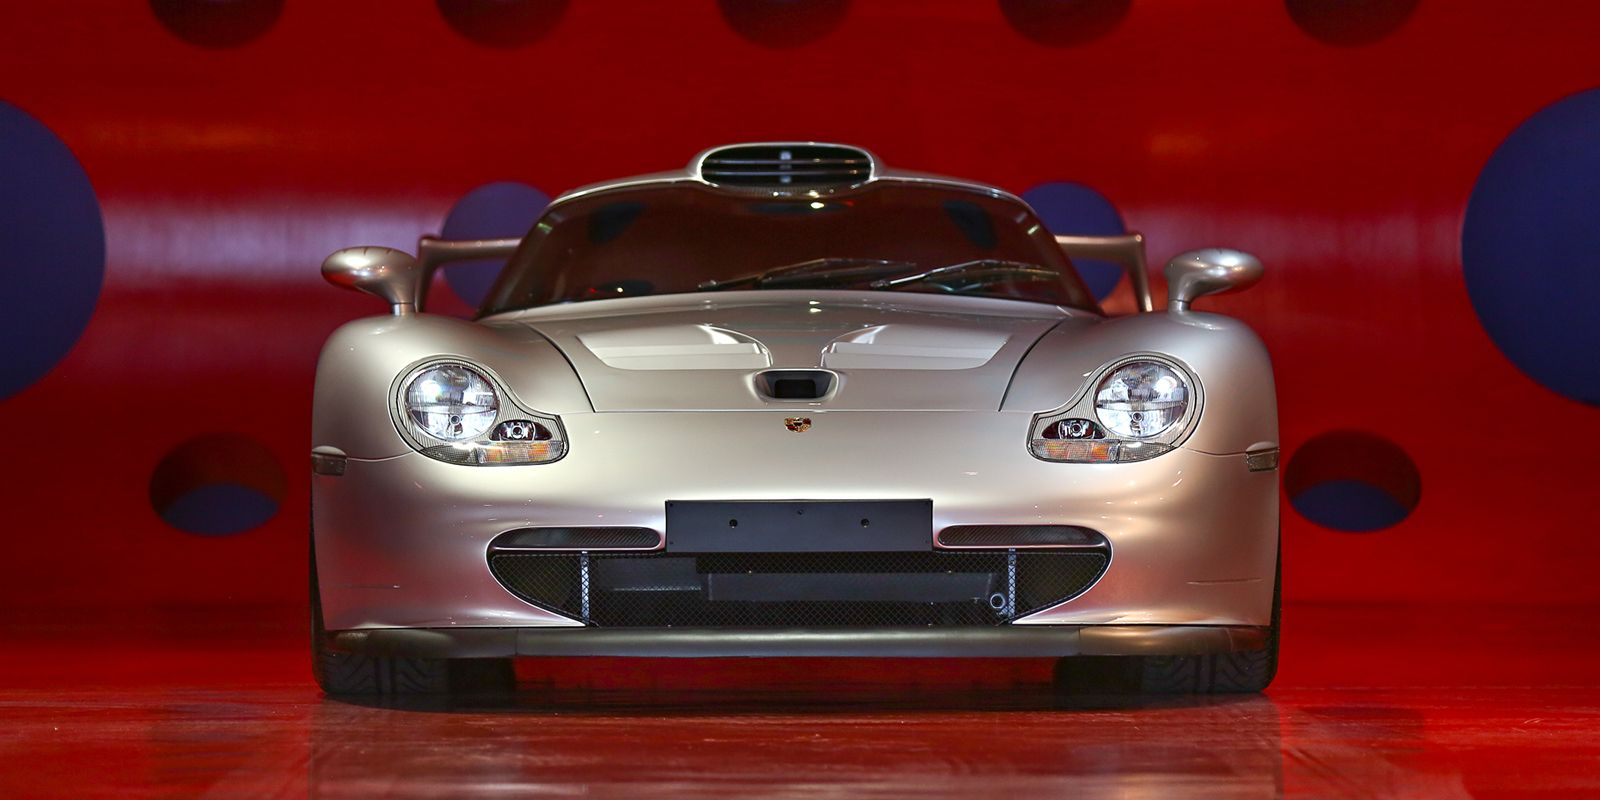 "<p>One of the rarest, most special Porsches ever built is the road-going homologation version of the Le Mans-winning 911 GT1. Still, <a href=""http://www.goodingco.com/vehicle/1998-porsche-911-gt1-strassenversion/"" target=""_blank"" data-tracking-id=""recirc-text-link"">its sale price</a> is crazy, especially considering a 1997 example <a href=""http://www.roadandtrack.com/car-culture/news/a28418/sell-everything-you-own-and-buy-this-porsche-911-gt1-evolution/"" target=""_blank"" data-tracking-id=""recirc-text-link"">sold recently for <em data-redactor-tag=""em"" data-verified=""redactor"">only</em> $3.1 million</a>.</p>"